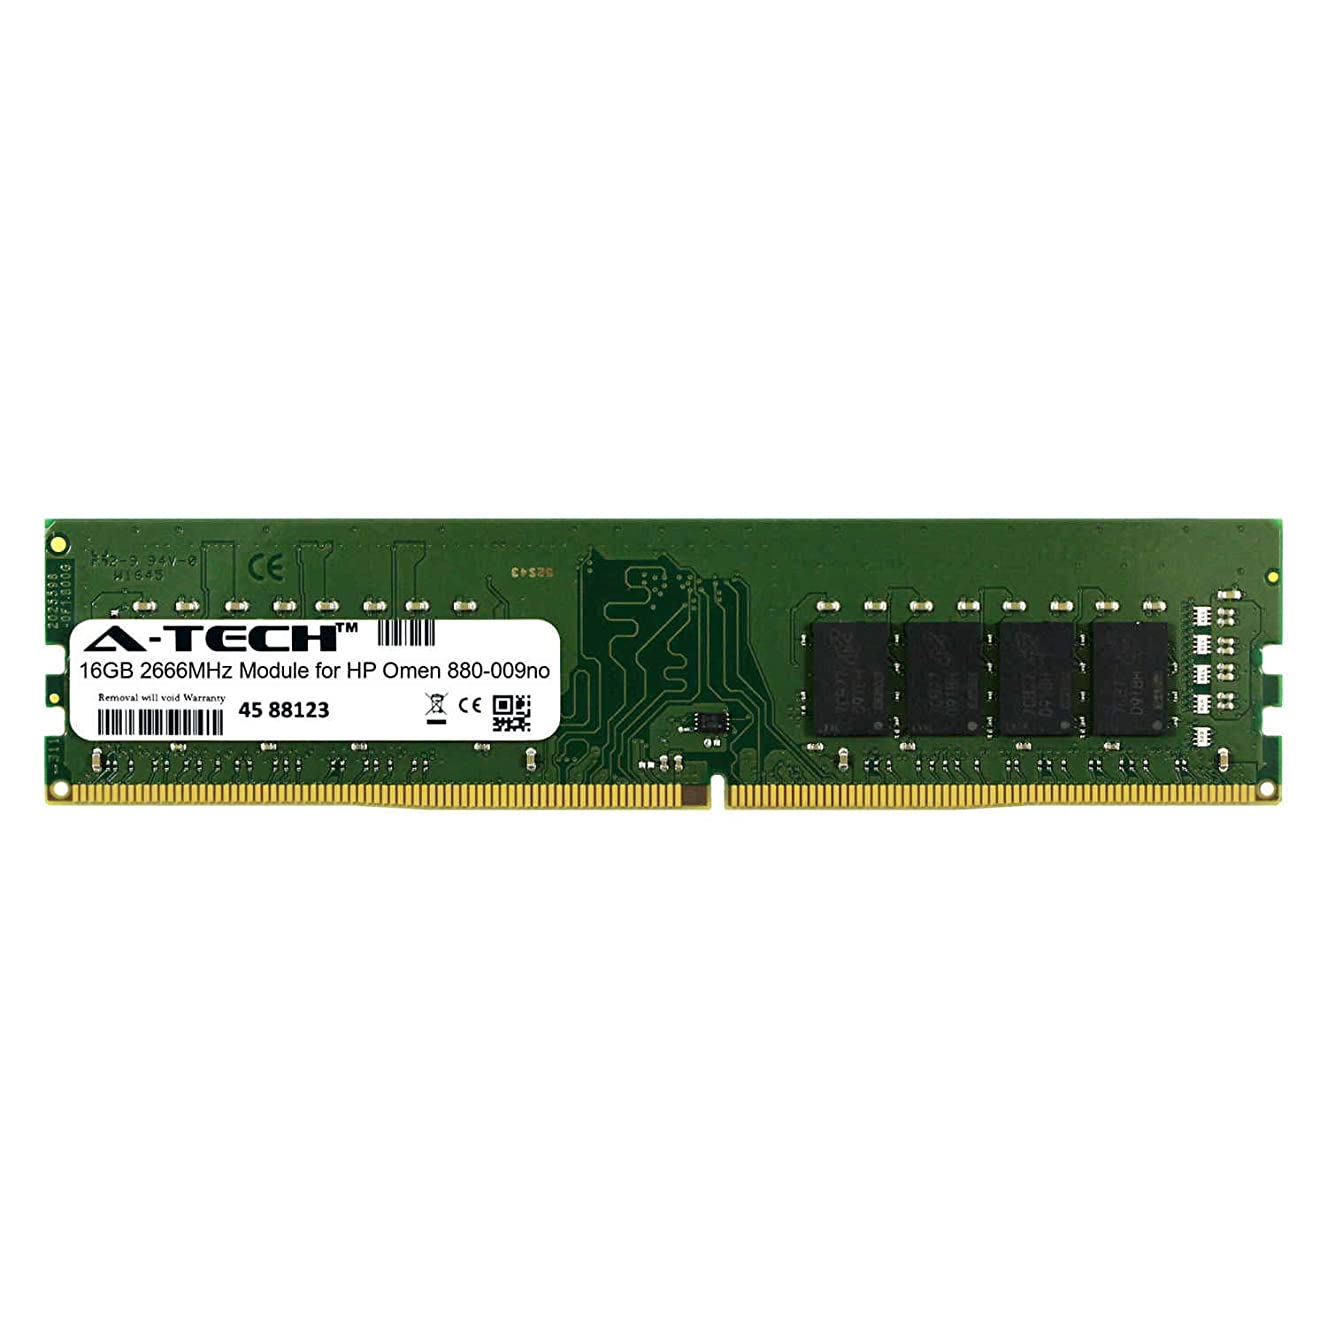 A-Tech 16GB Module for HP Omen 880-009no Desktop & Workstation Motherboard Compatible DDR4 2666Mhz Memory Ram (ATMS282419A25823X1)